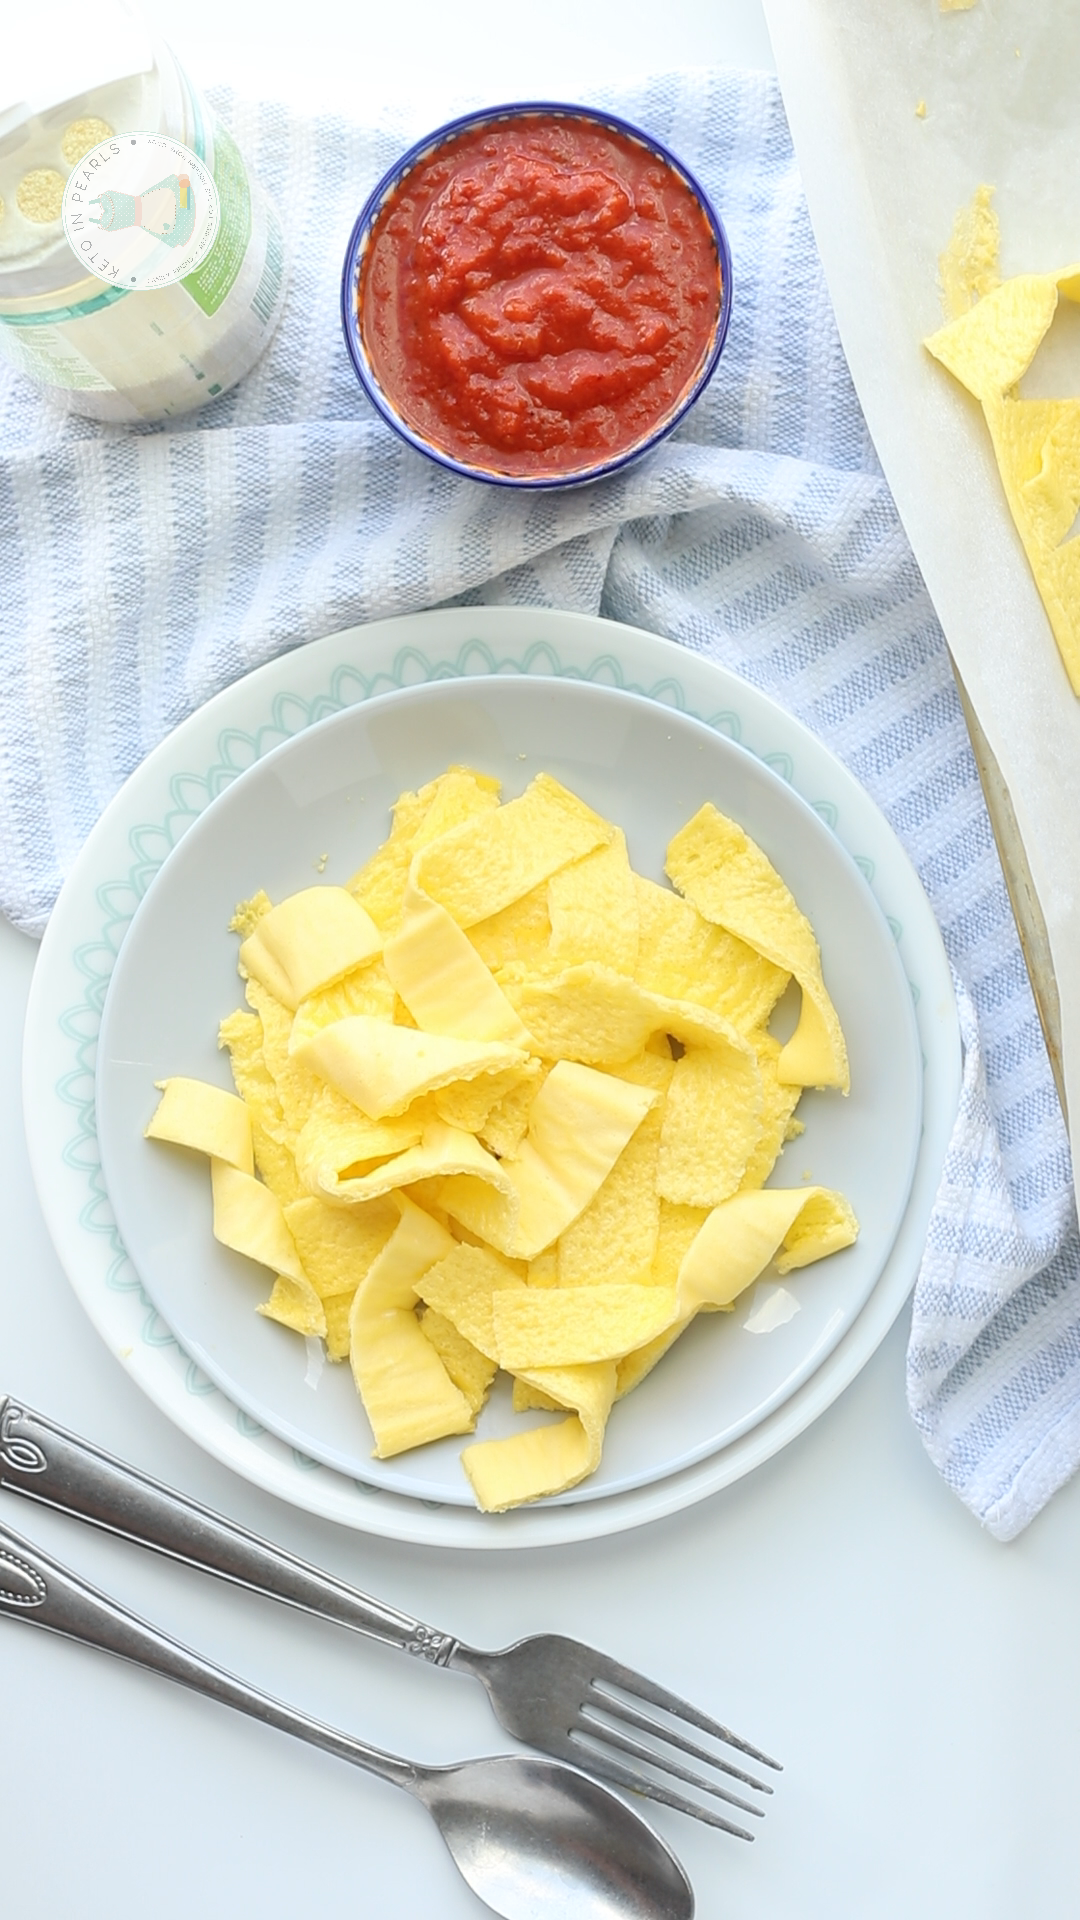 Keto egg noodles are an easy and low carb alternative for pasta. Ready in under 10 minutes, less than 2 carbs per serving, and the perfect way to soak up all the your favorite keto pasta sauces!